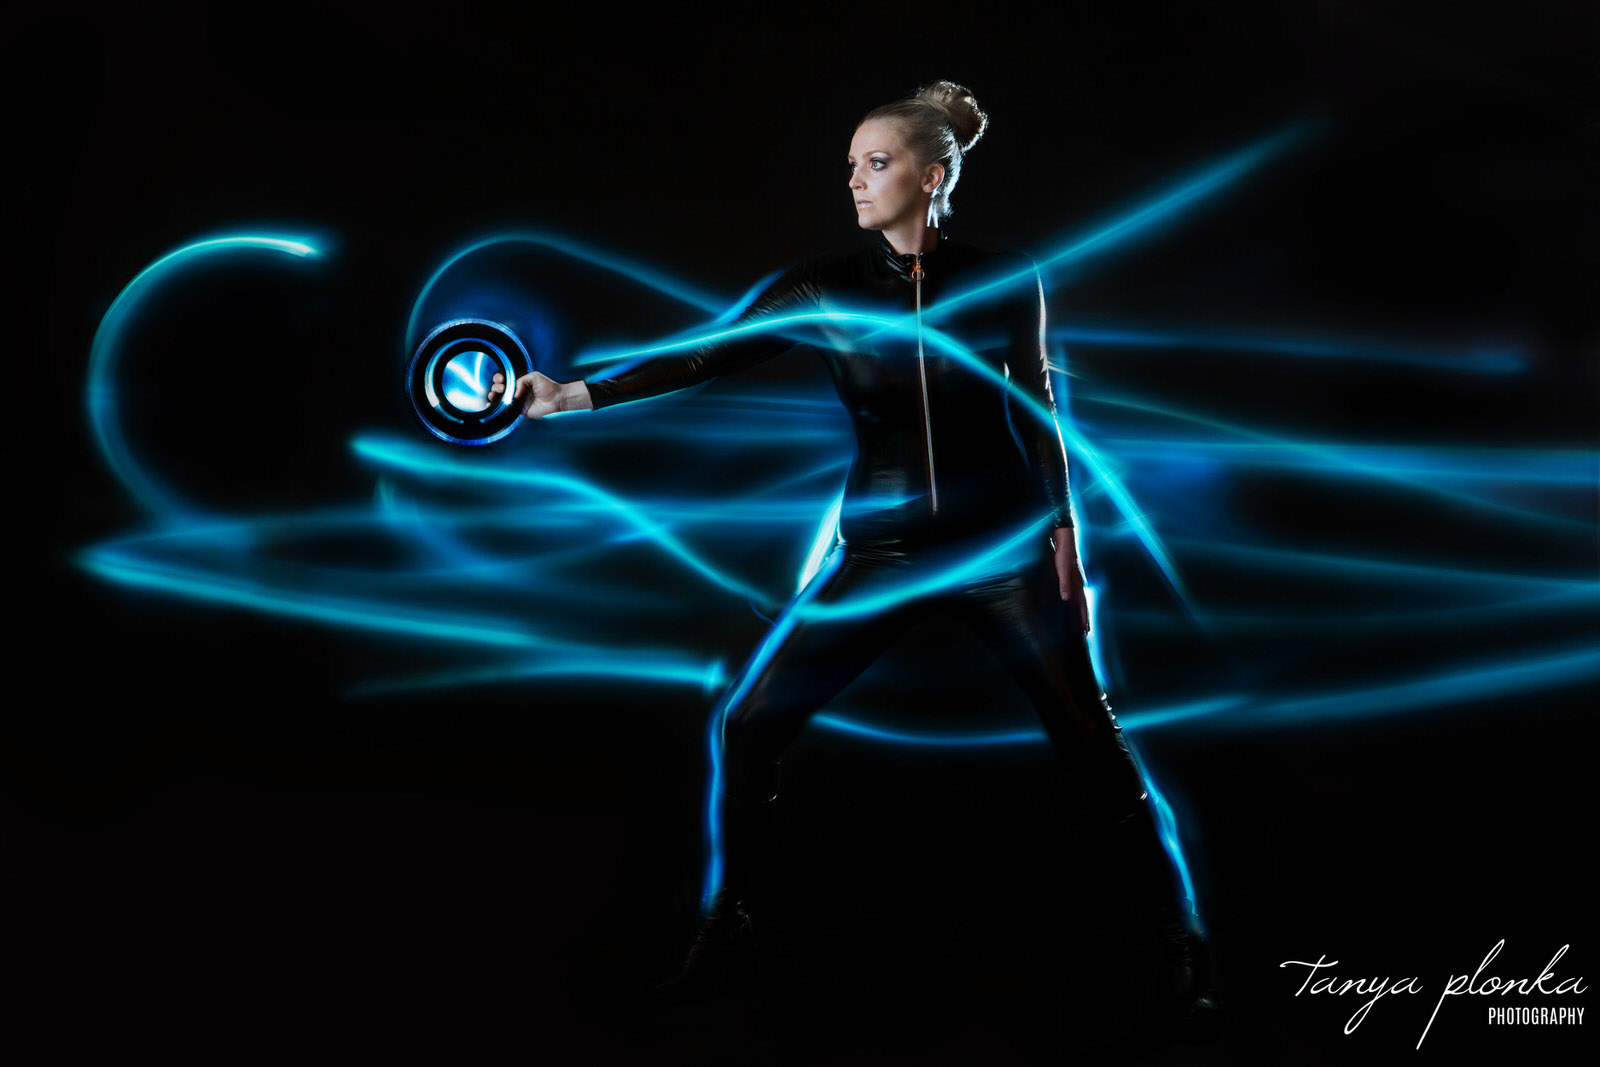 blonde woman in black bodysuit holding Tron identity disc poses against black background with blue light painting around her